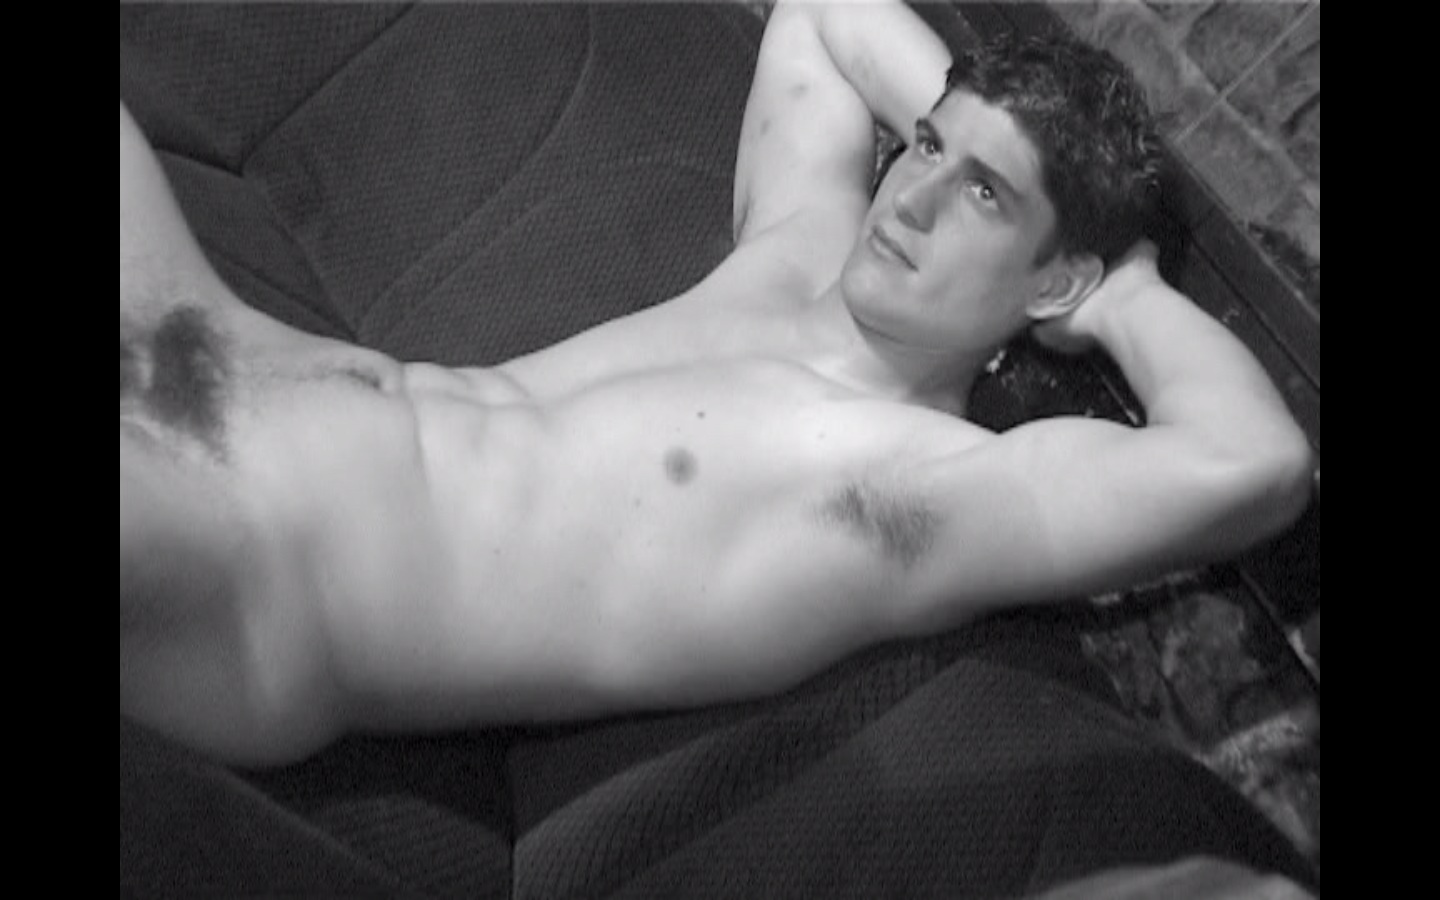 Jo Dee Messina Naked Minimalist eviltwin's male film & tv screencaps: the making of dieux du stade